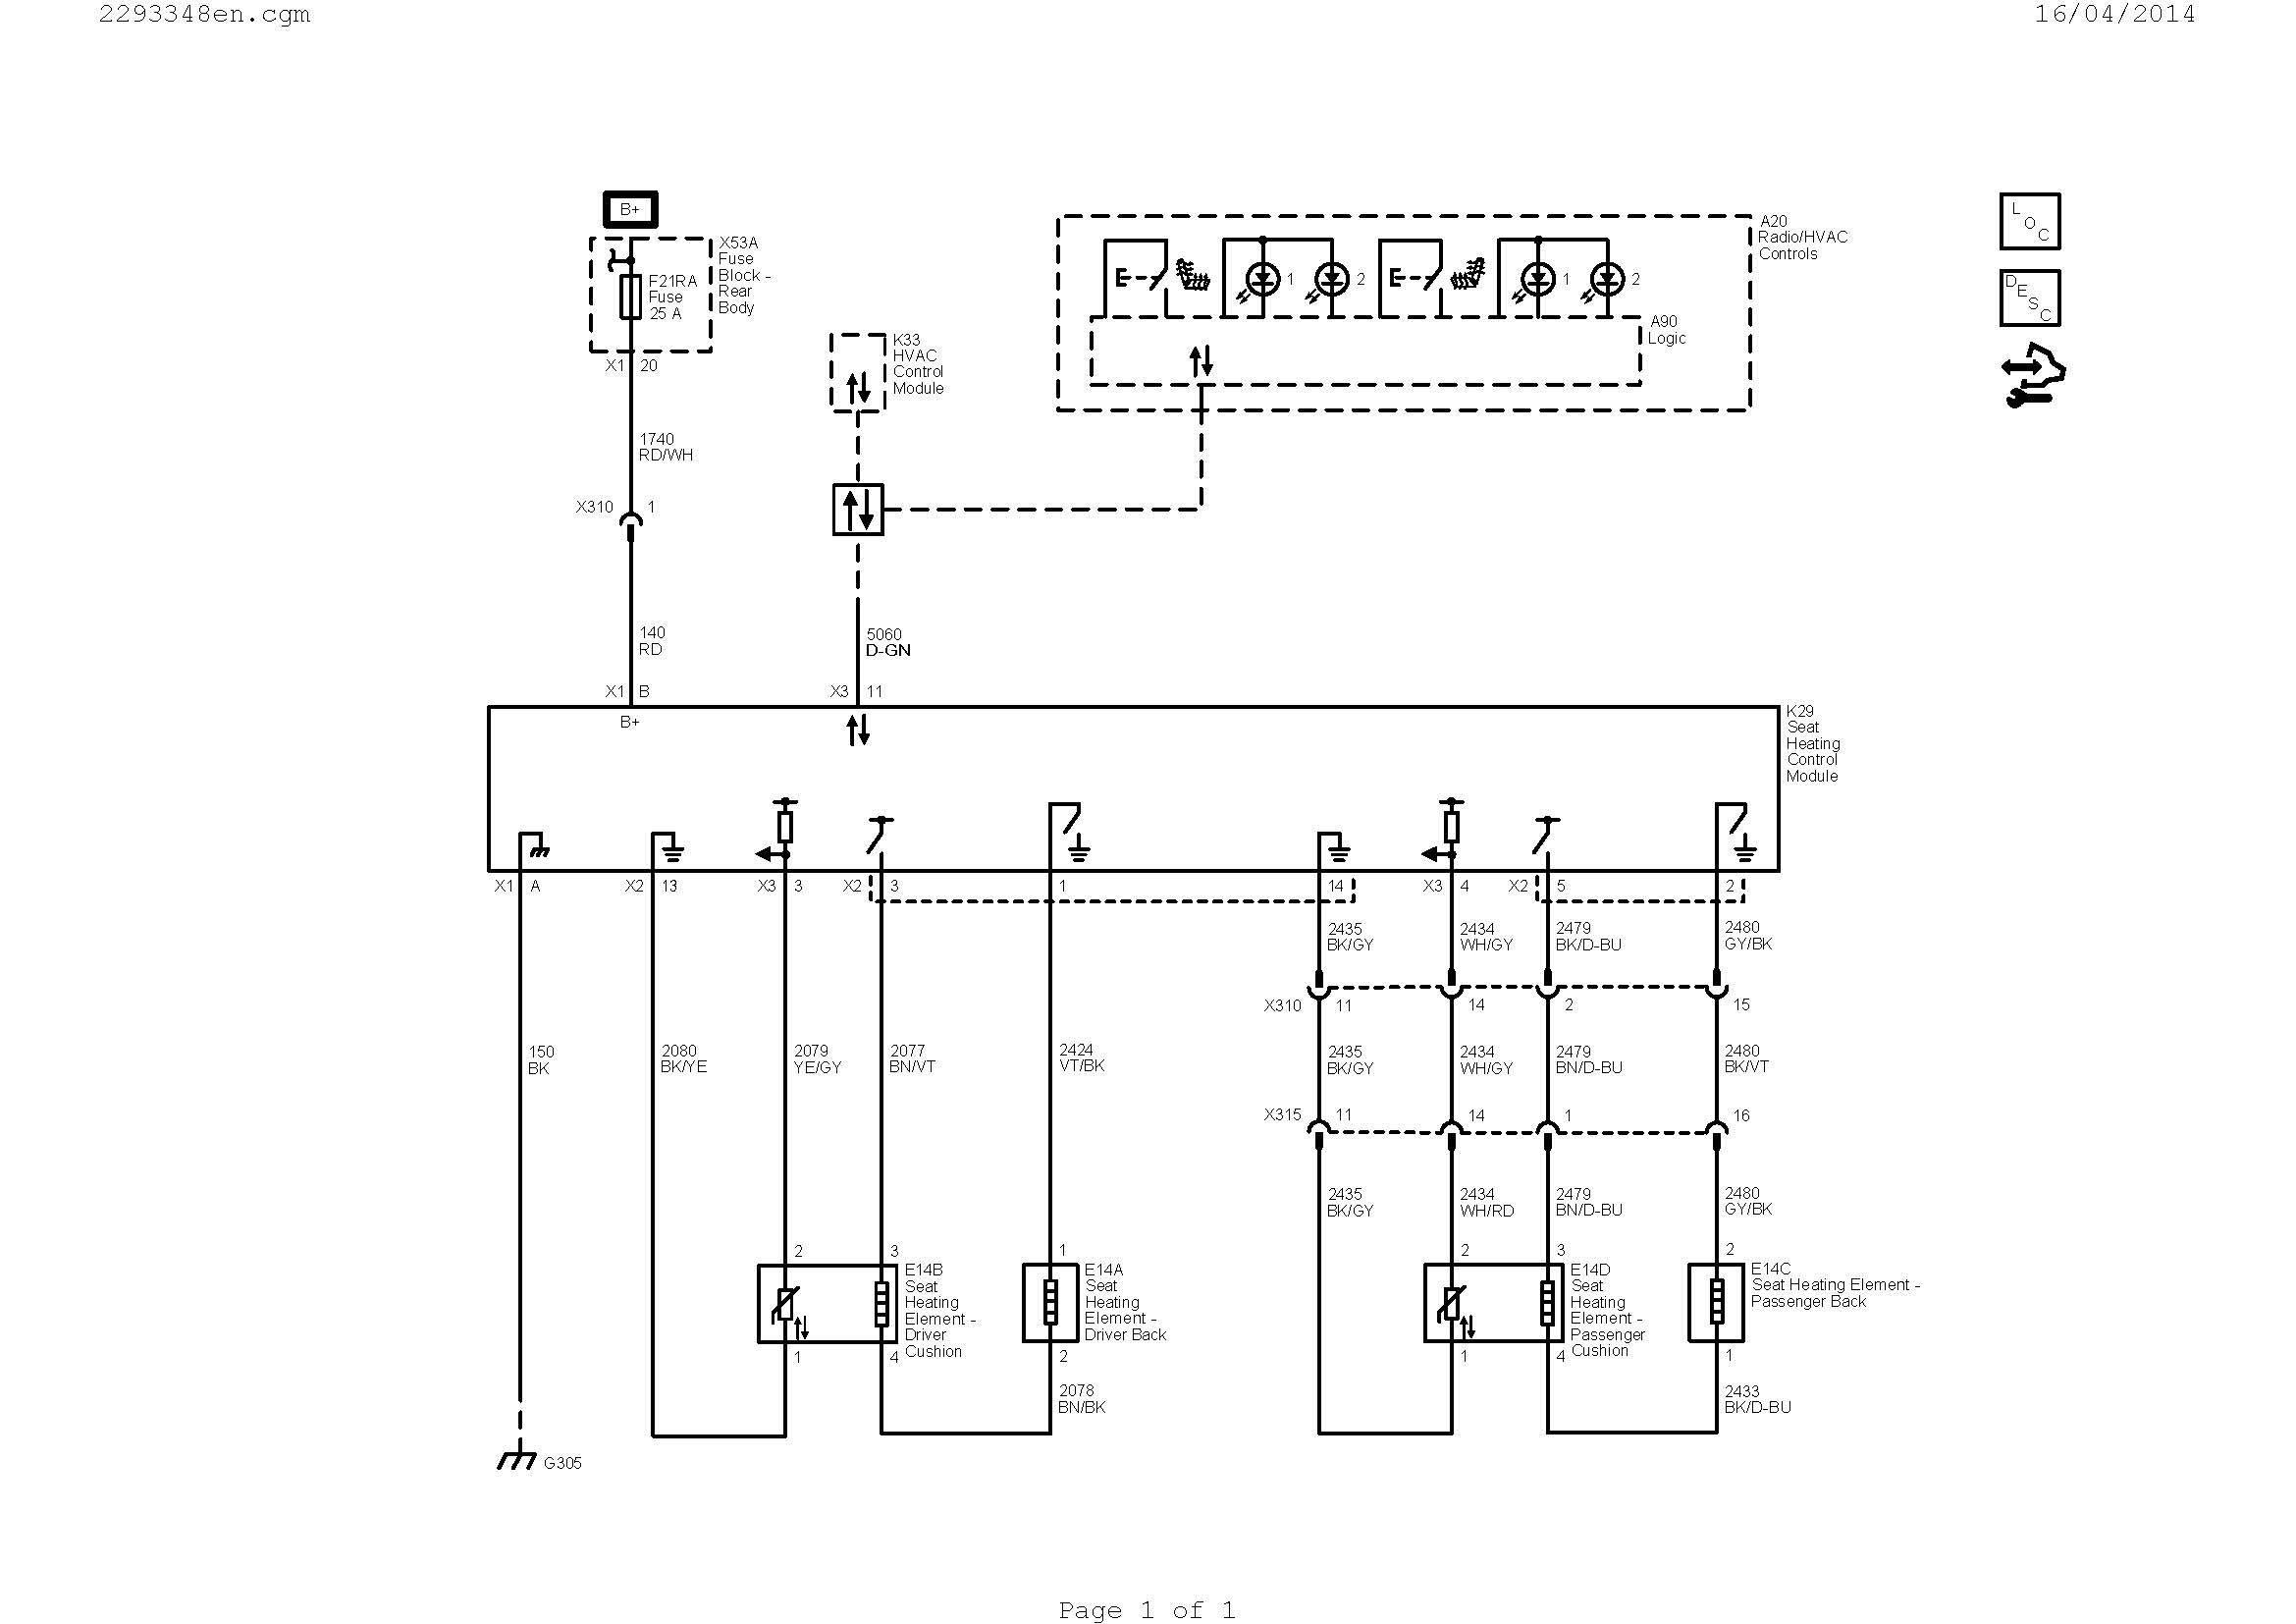 carrier ac unit wiring diagram Download-split unit wiring diagram Download Wiring A Ac Thermostat Diagram New Wiring Diagram Ac Valid DOWNLOAD Wiring Diagram 4-f